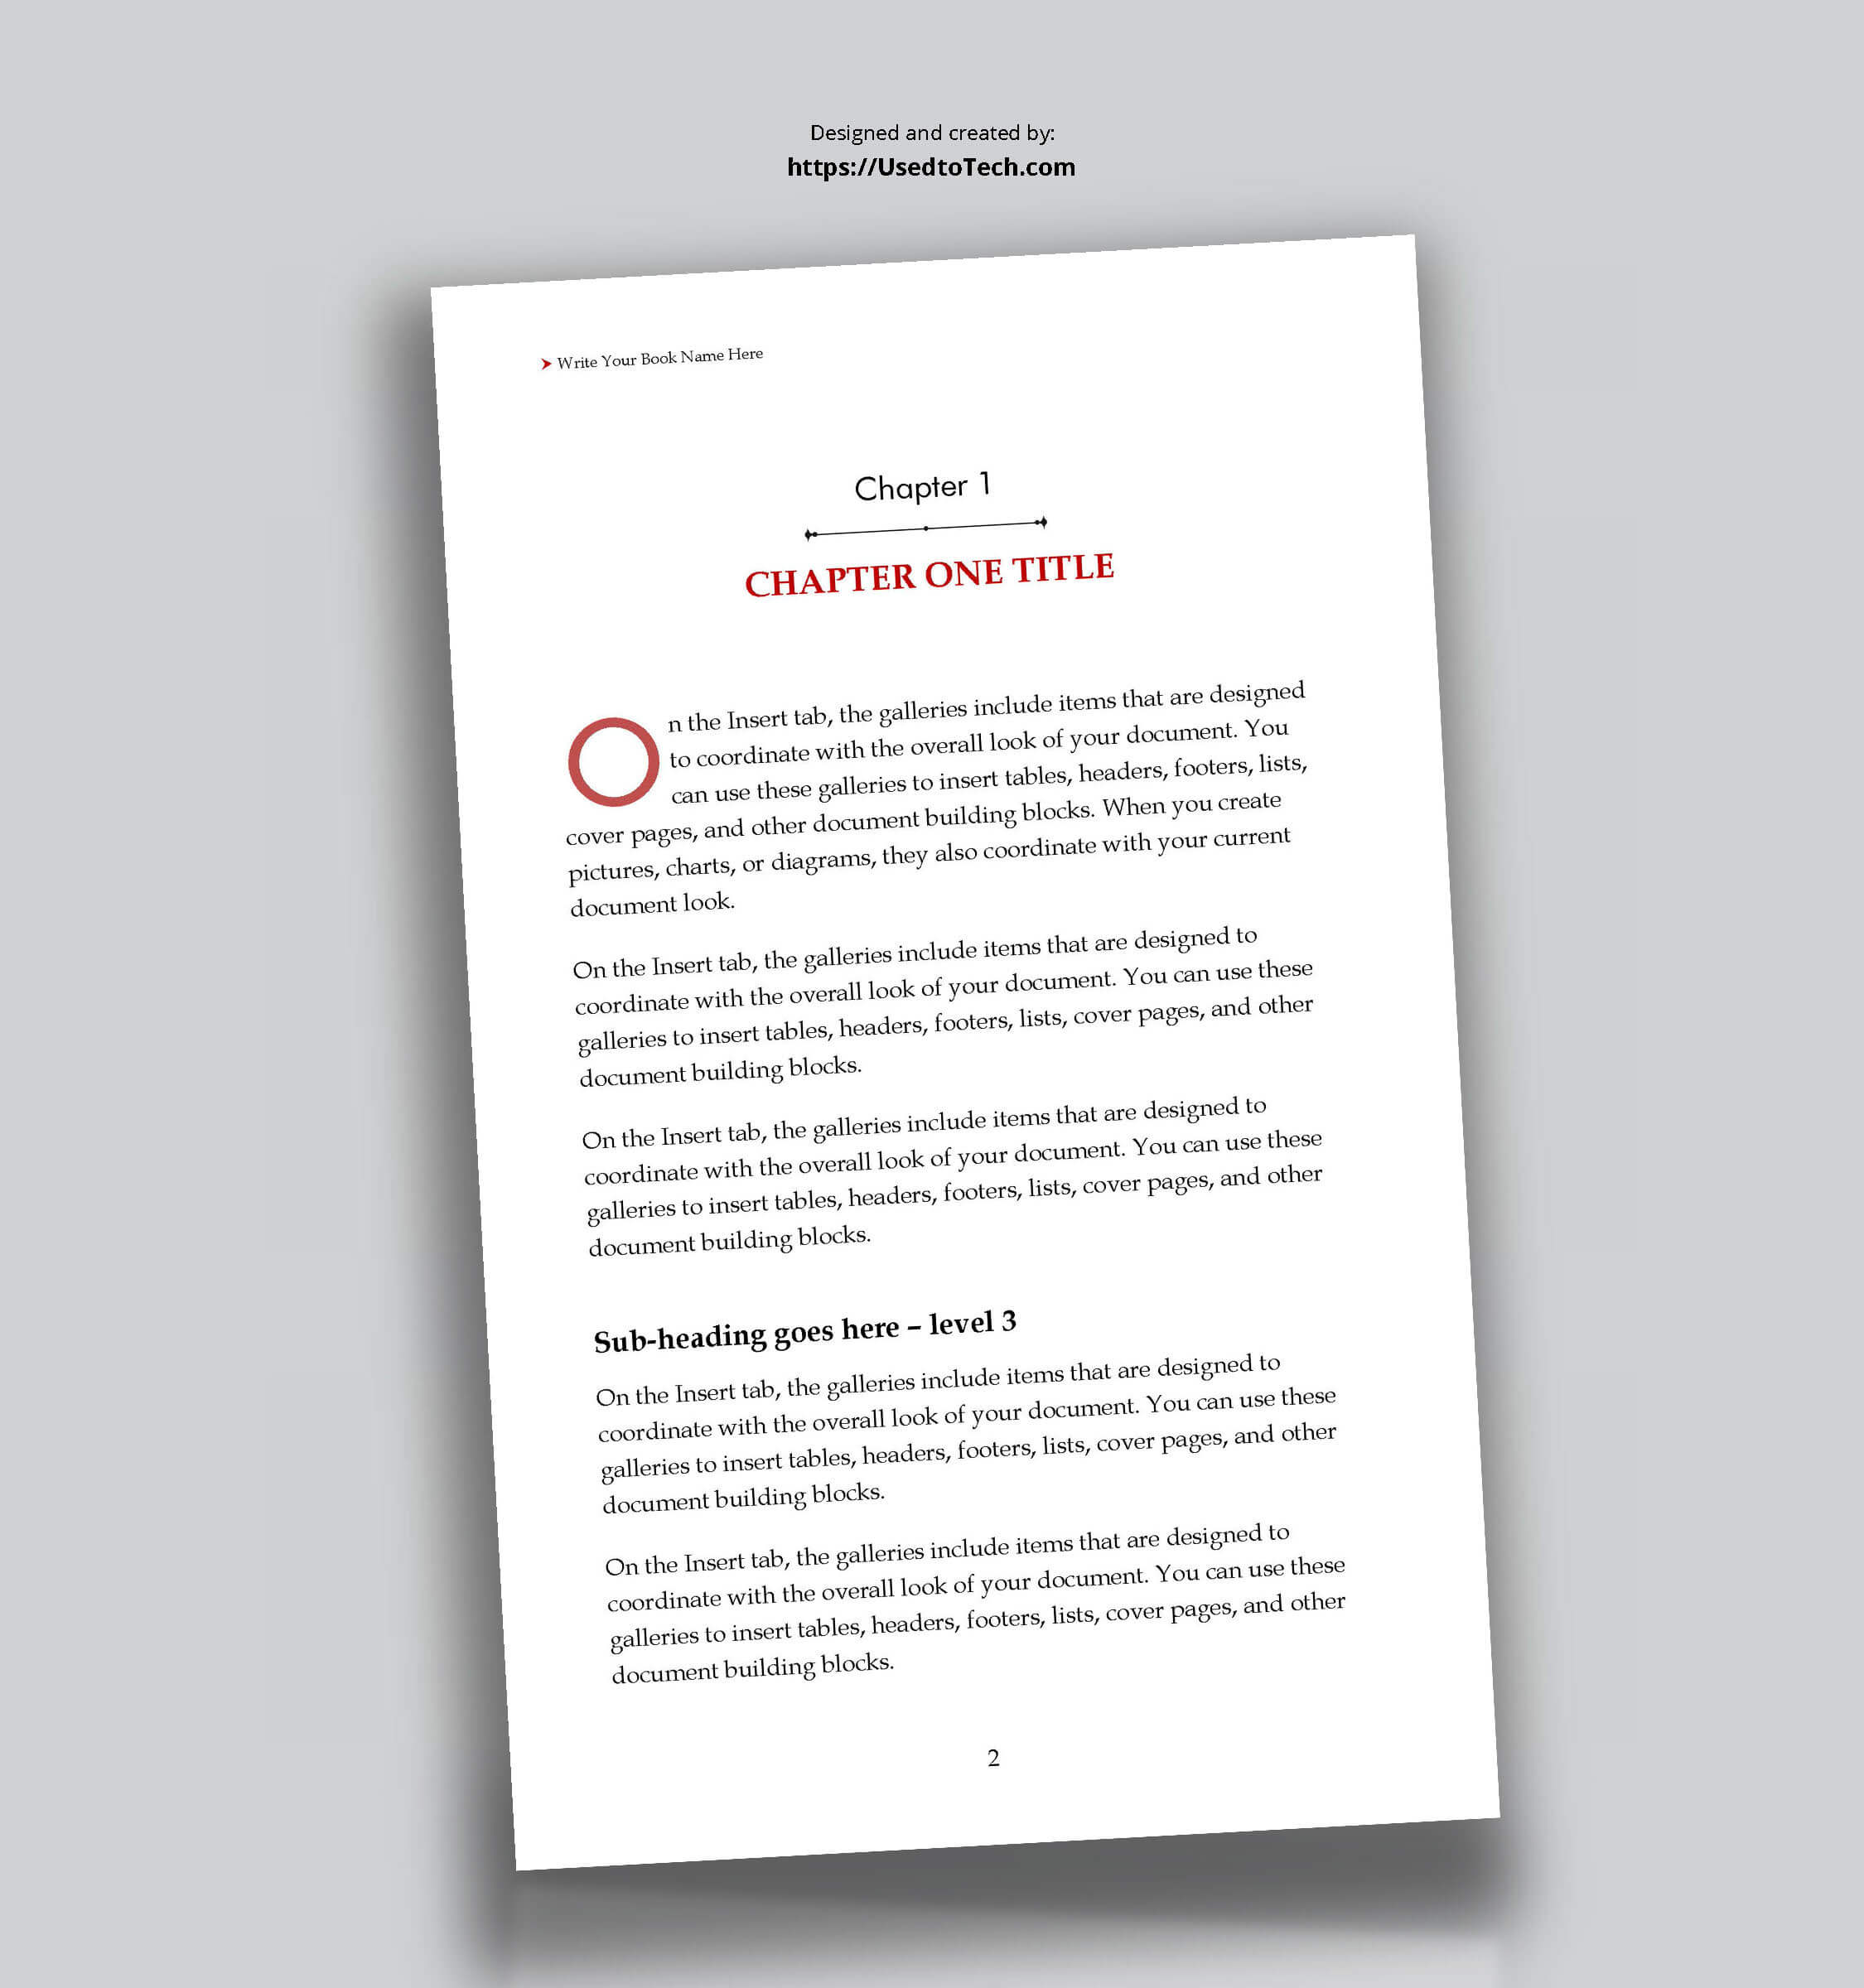 5 X 8 Editable Book Template In Word – Used To Tech With Regard To How To Create A Book Template In Word